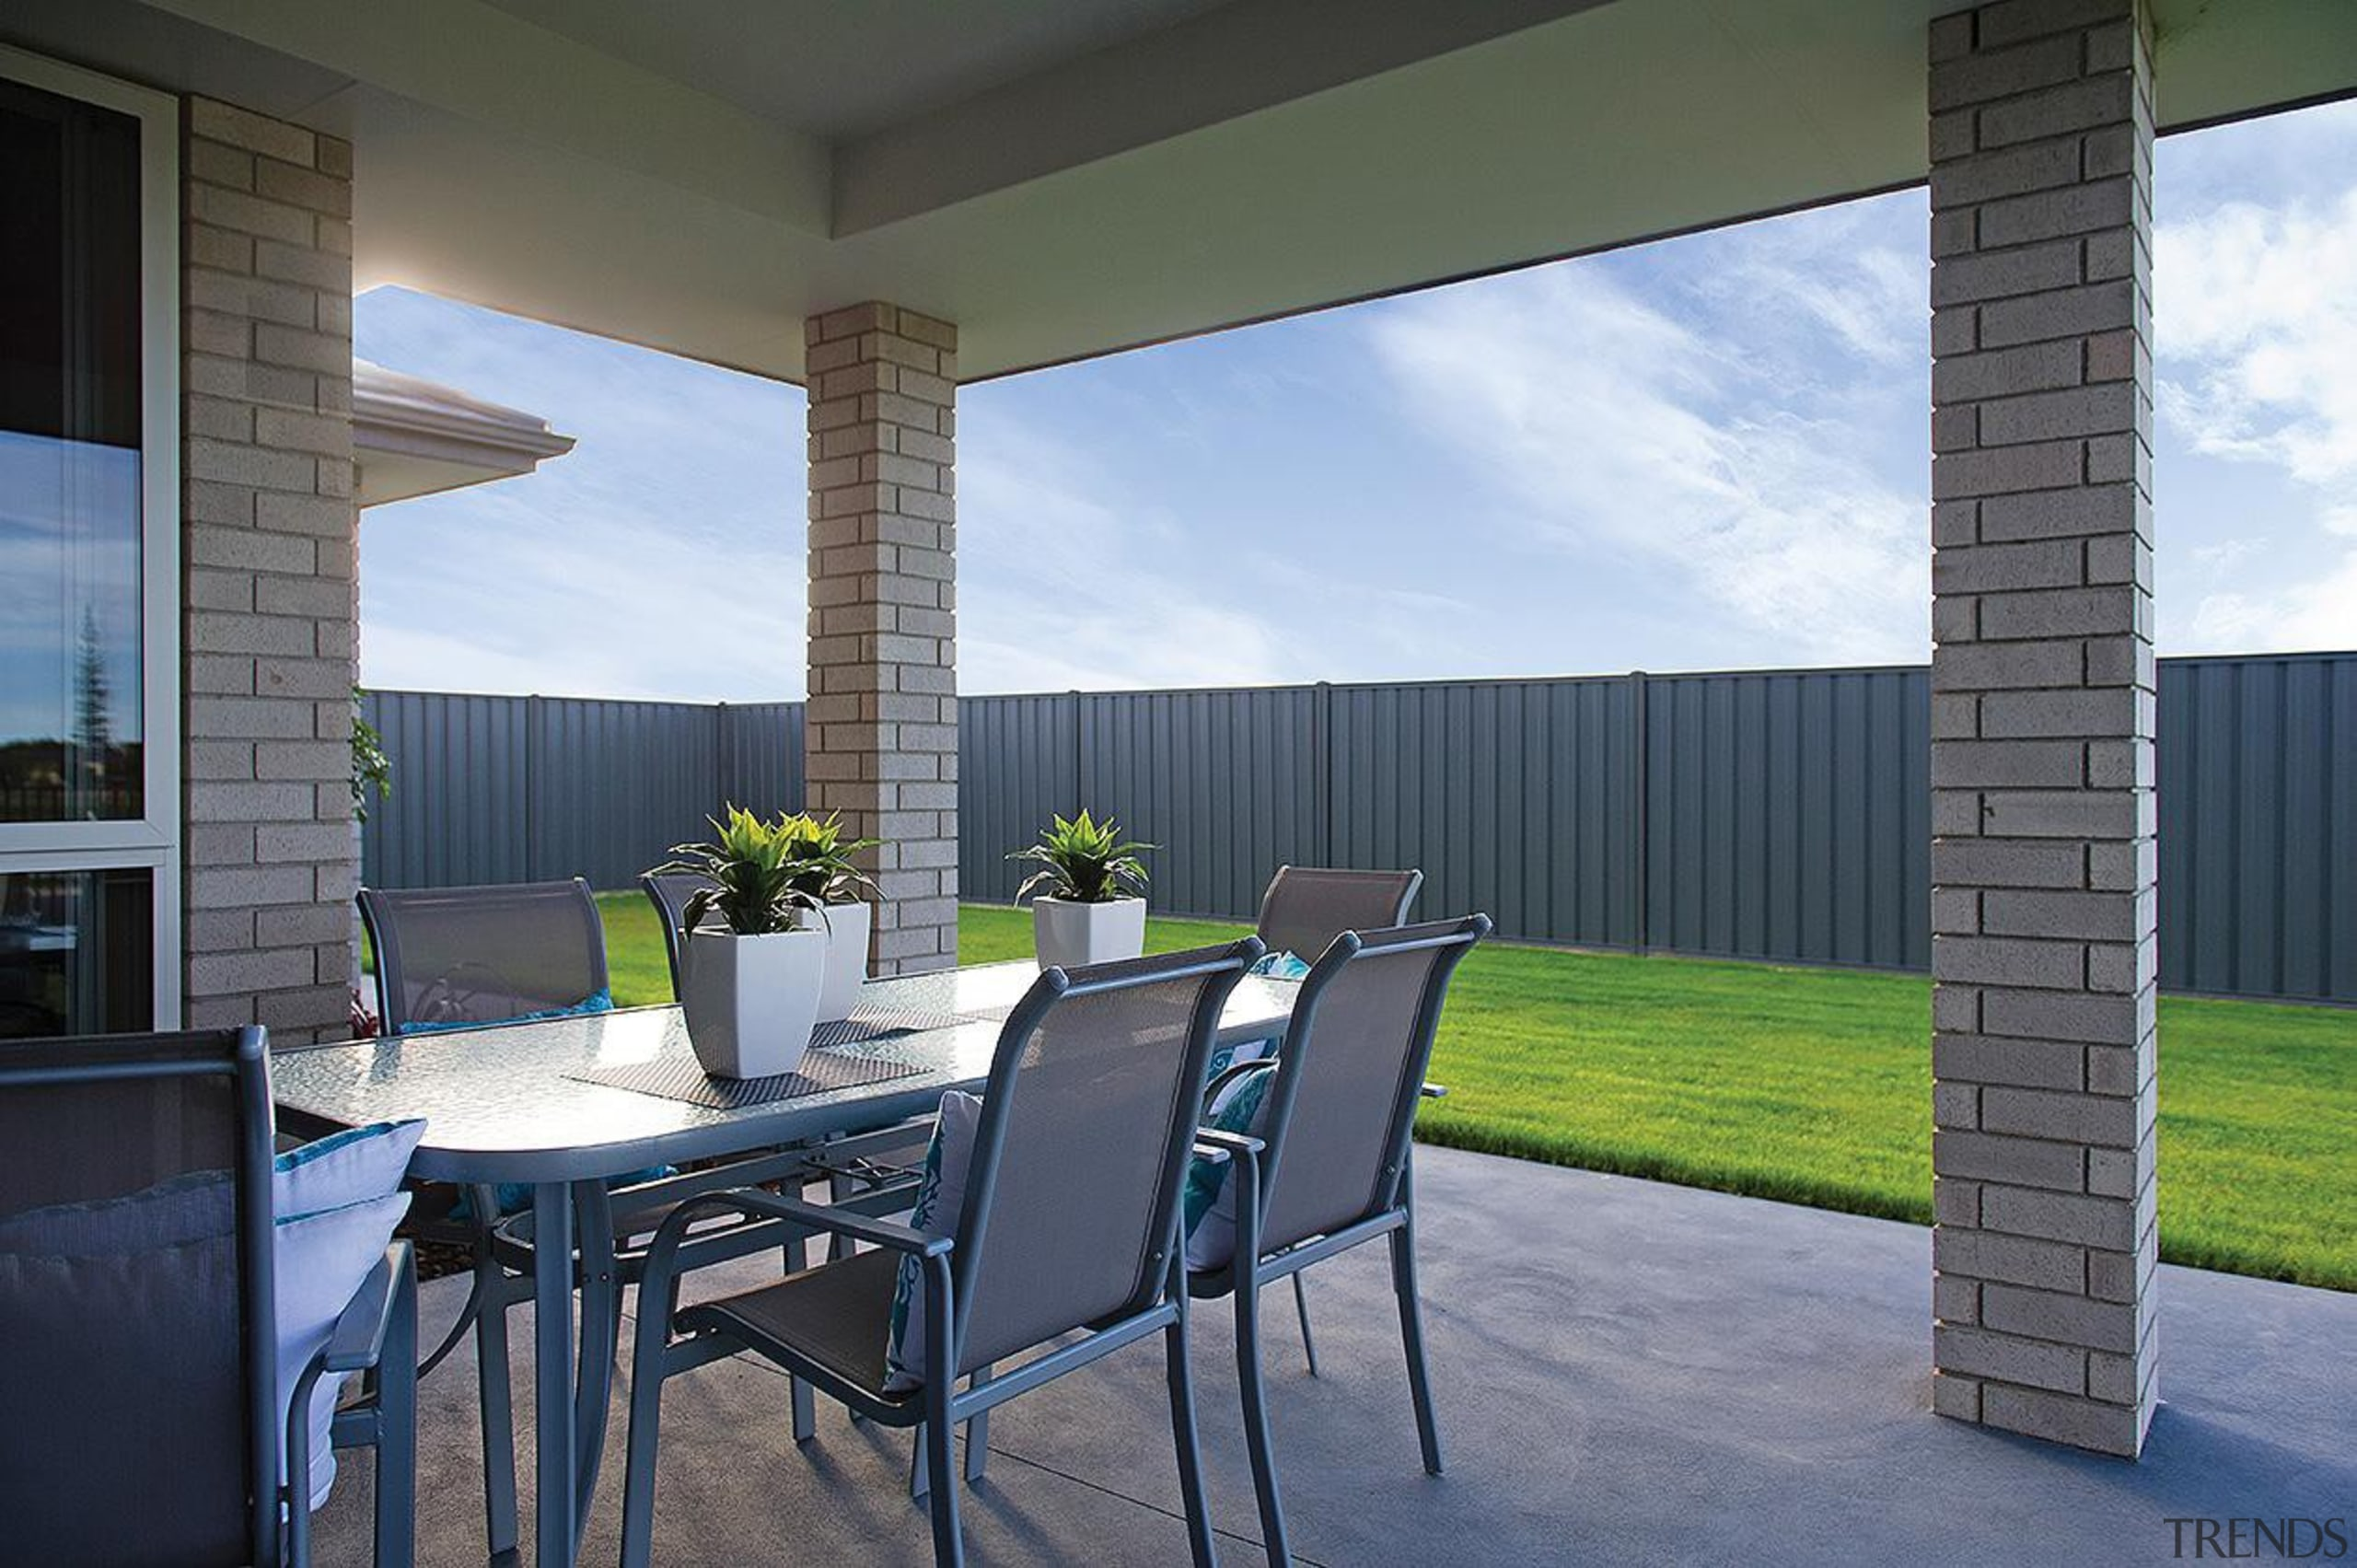 For more information, please visit www.gjgardner.co.nz architecture, backyard, home, house, interior design, property, real estate, shade, window, gray